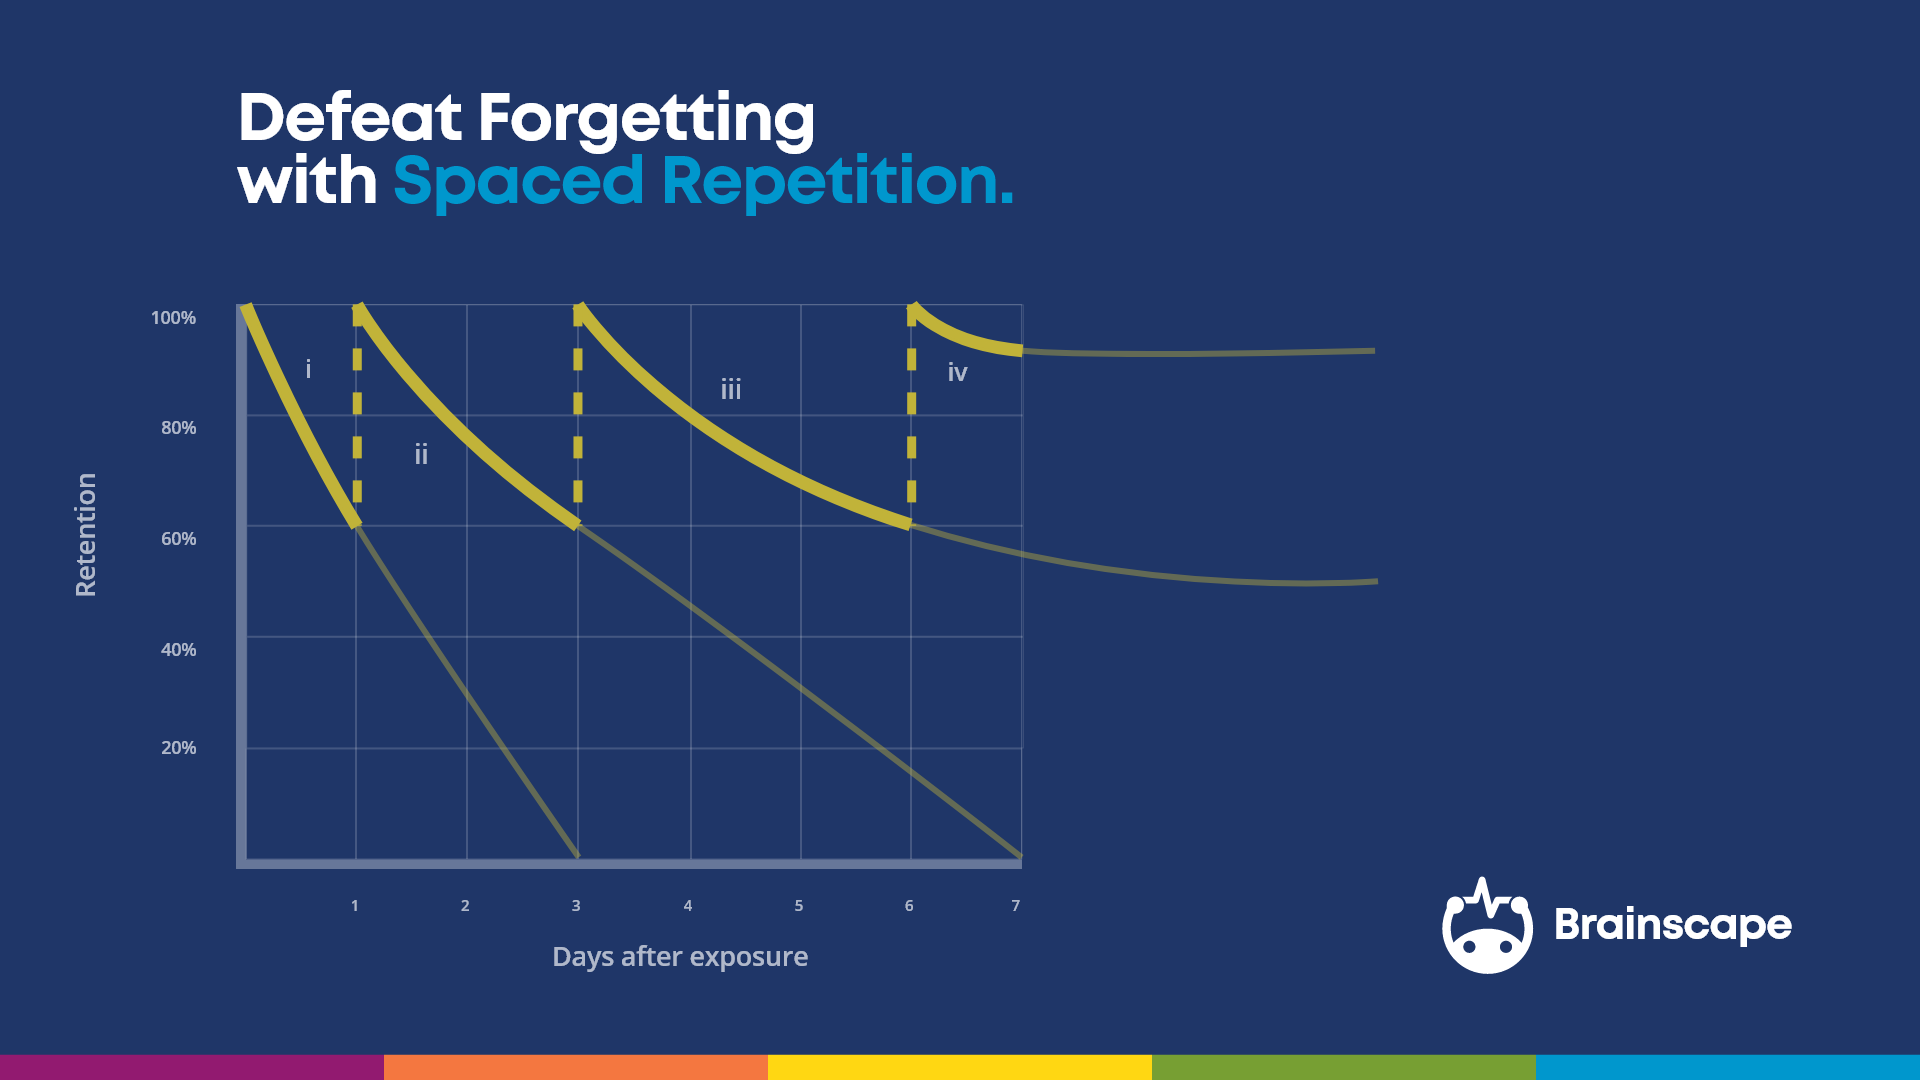 Spaced repetition to help learning by repetition